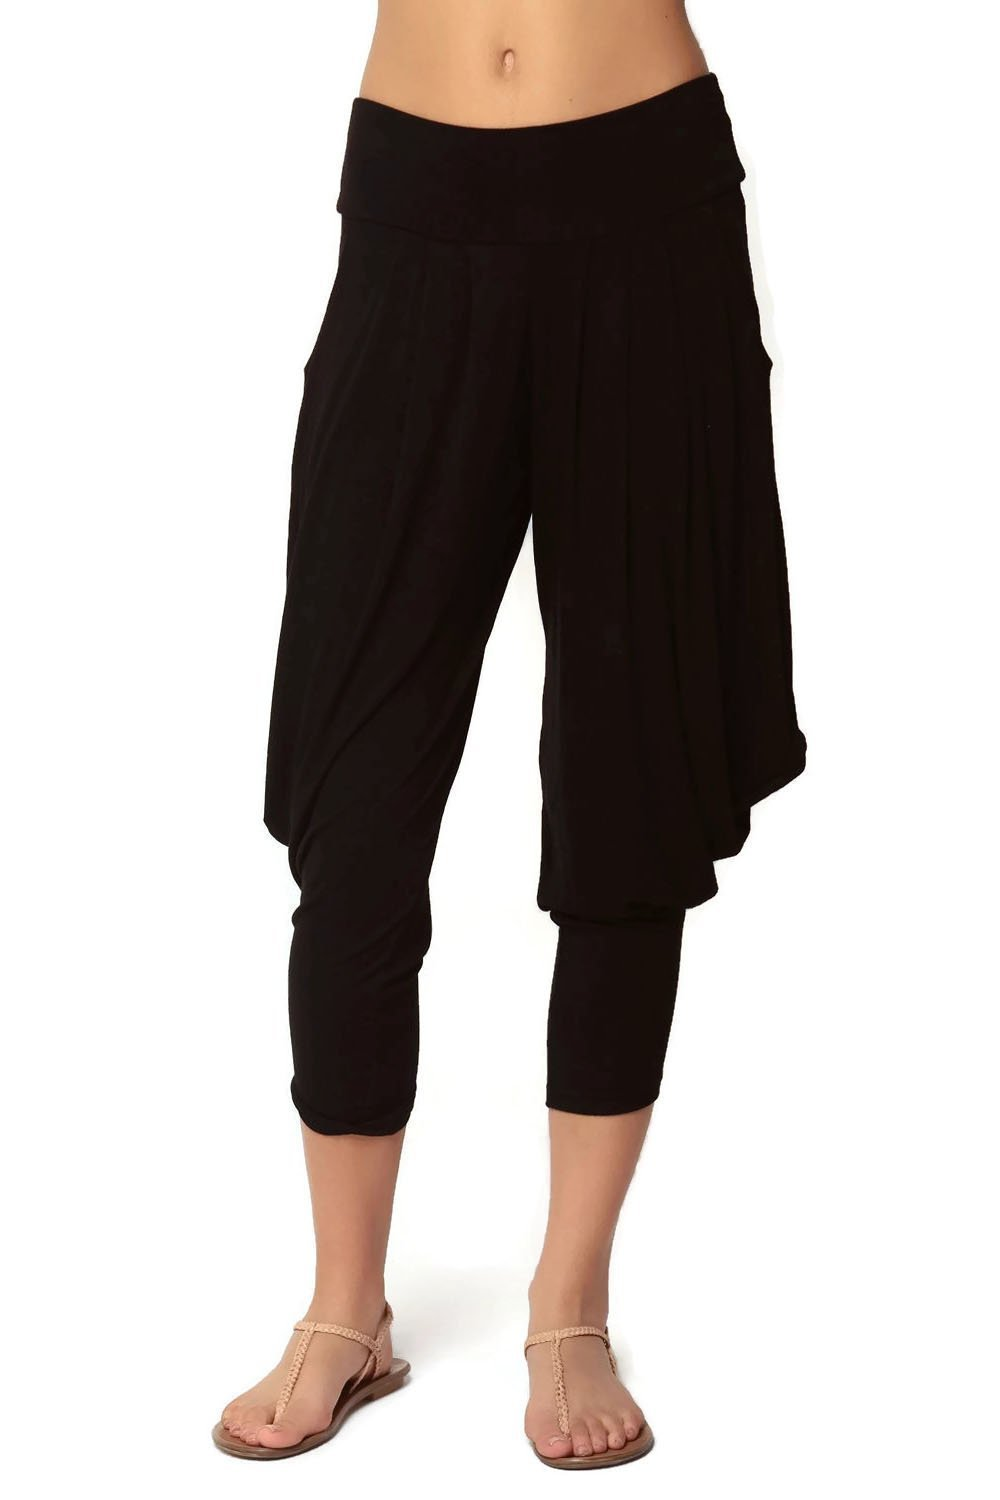 Simplicitie Women's Soft Yoga Sports Dance Harem Pants - Black, Small - Made in USA